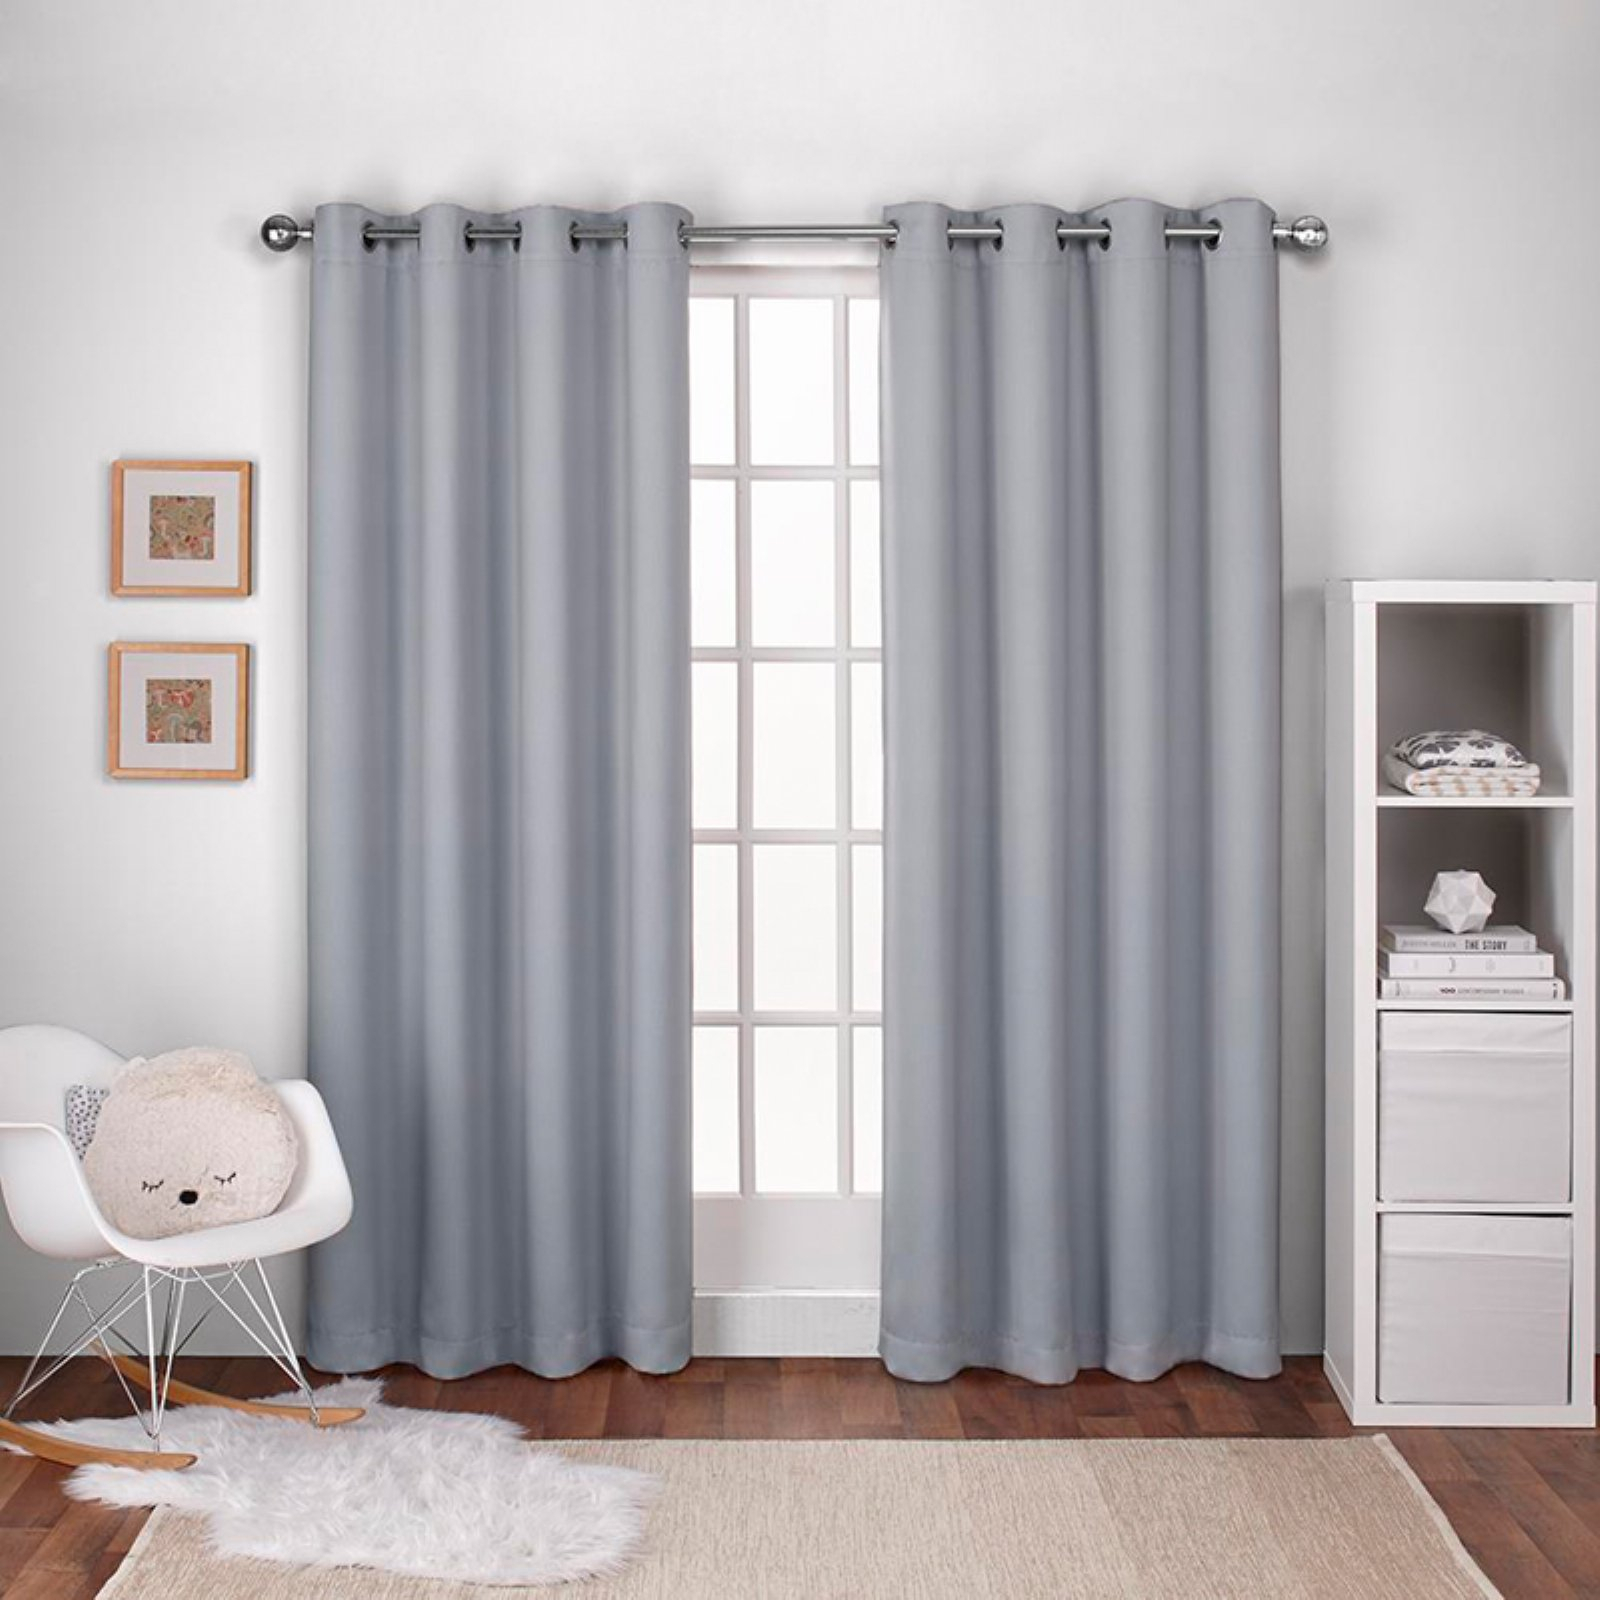 Exclusive Home Textured Woven Blackout Window Curtain Panel Pair With Grommet Top With Thermal Woven Blackout Grommet Top Curtain Panel Pairs (View 20 of 30)